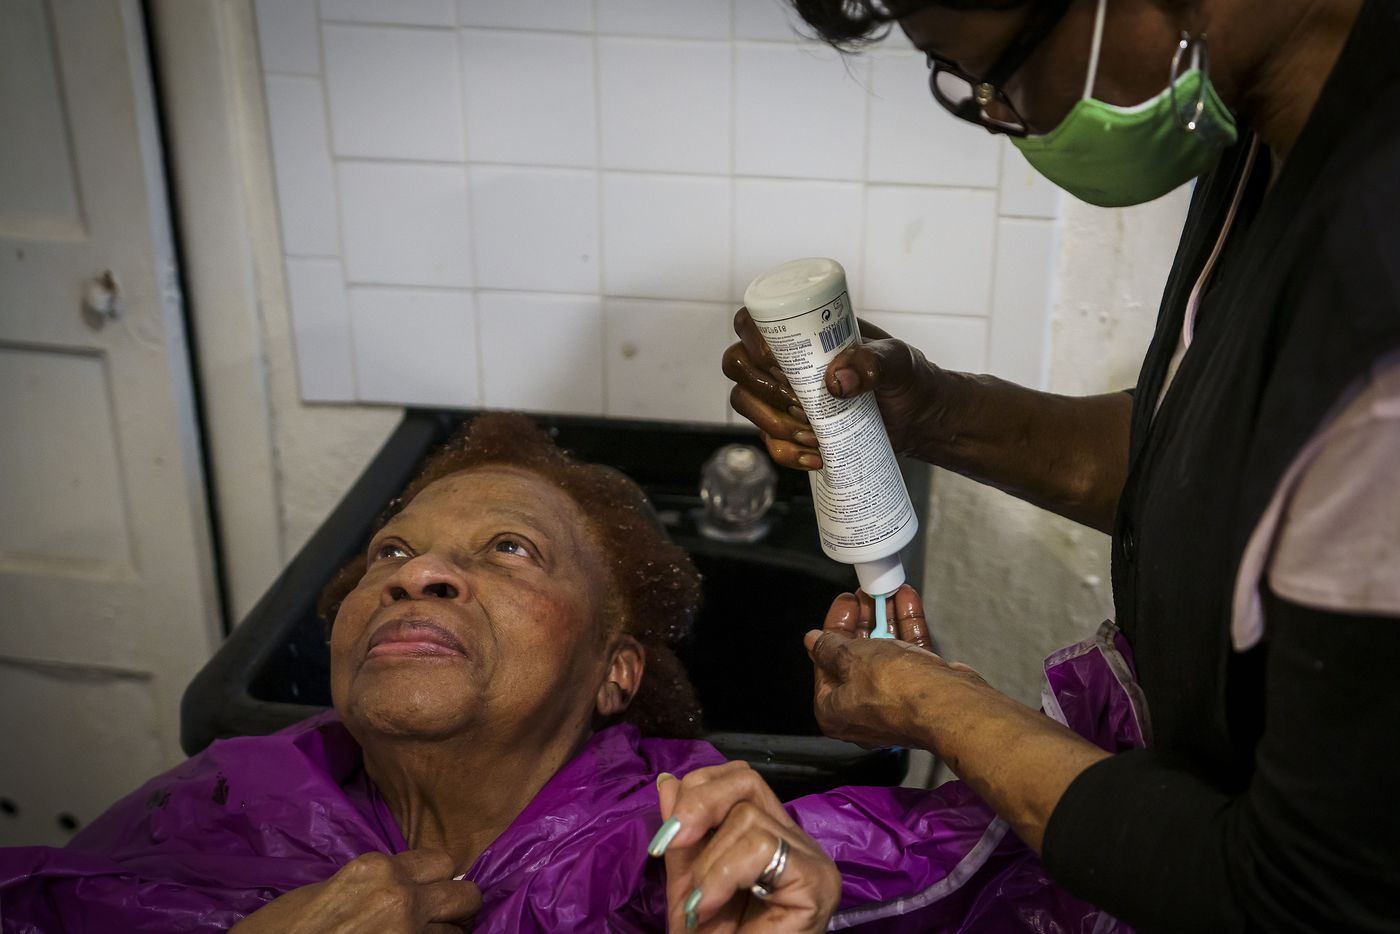 Earnestine Tarrant washes the hair of client Vera Harris at her hair salon. After four decades in business, she decided to close on New Year's Eve.